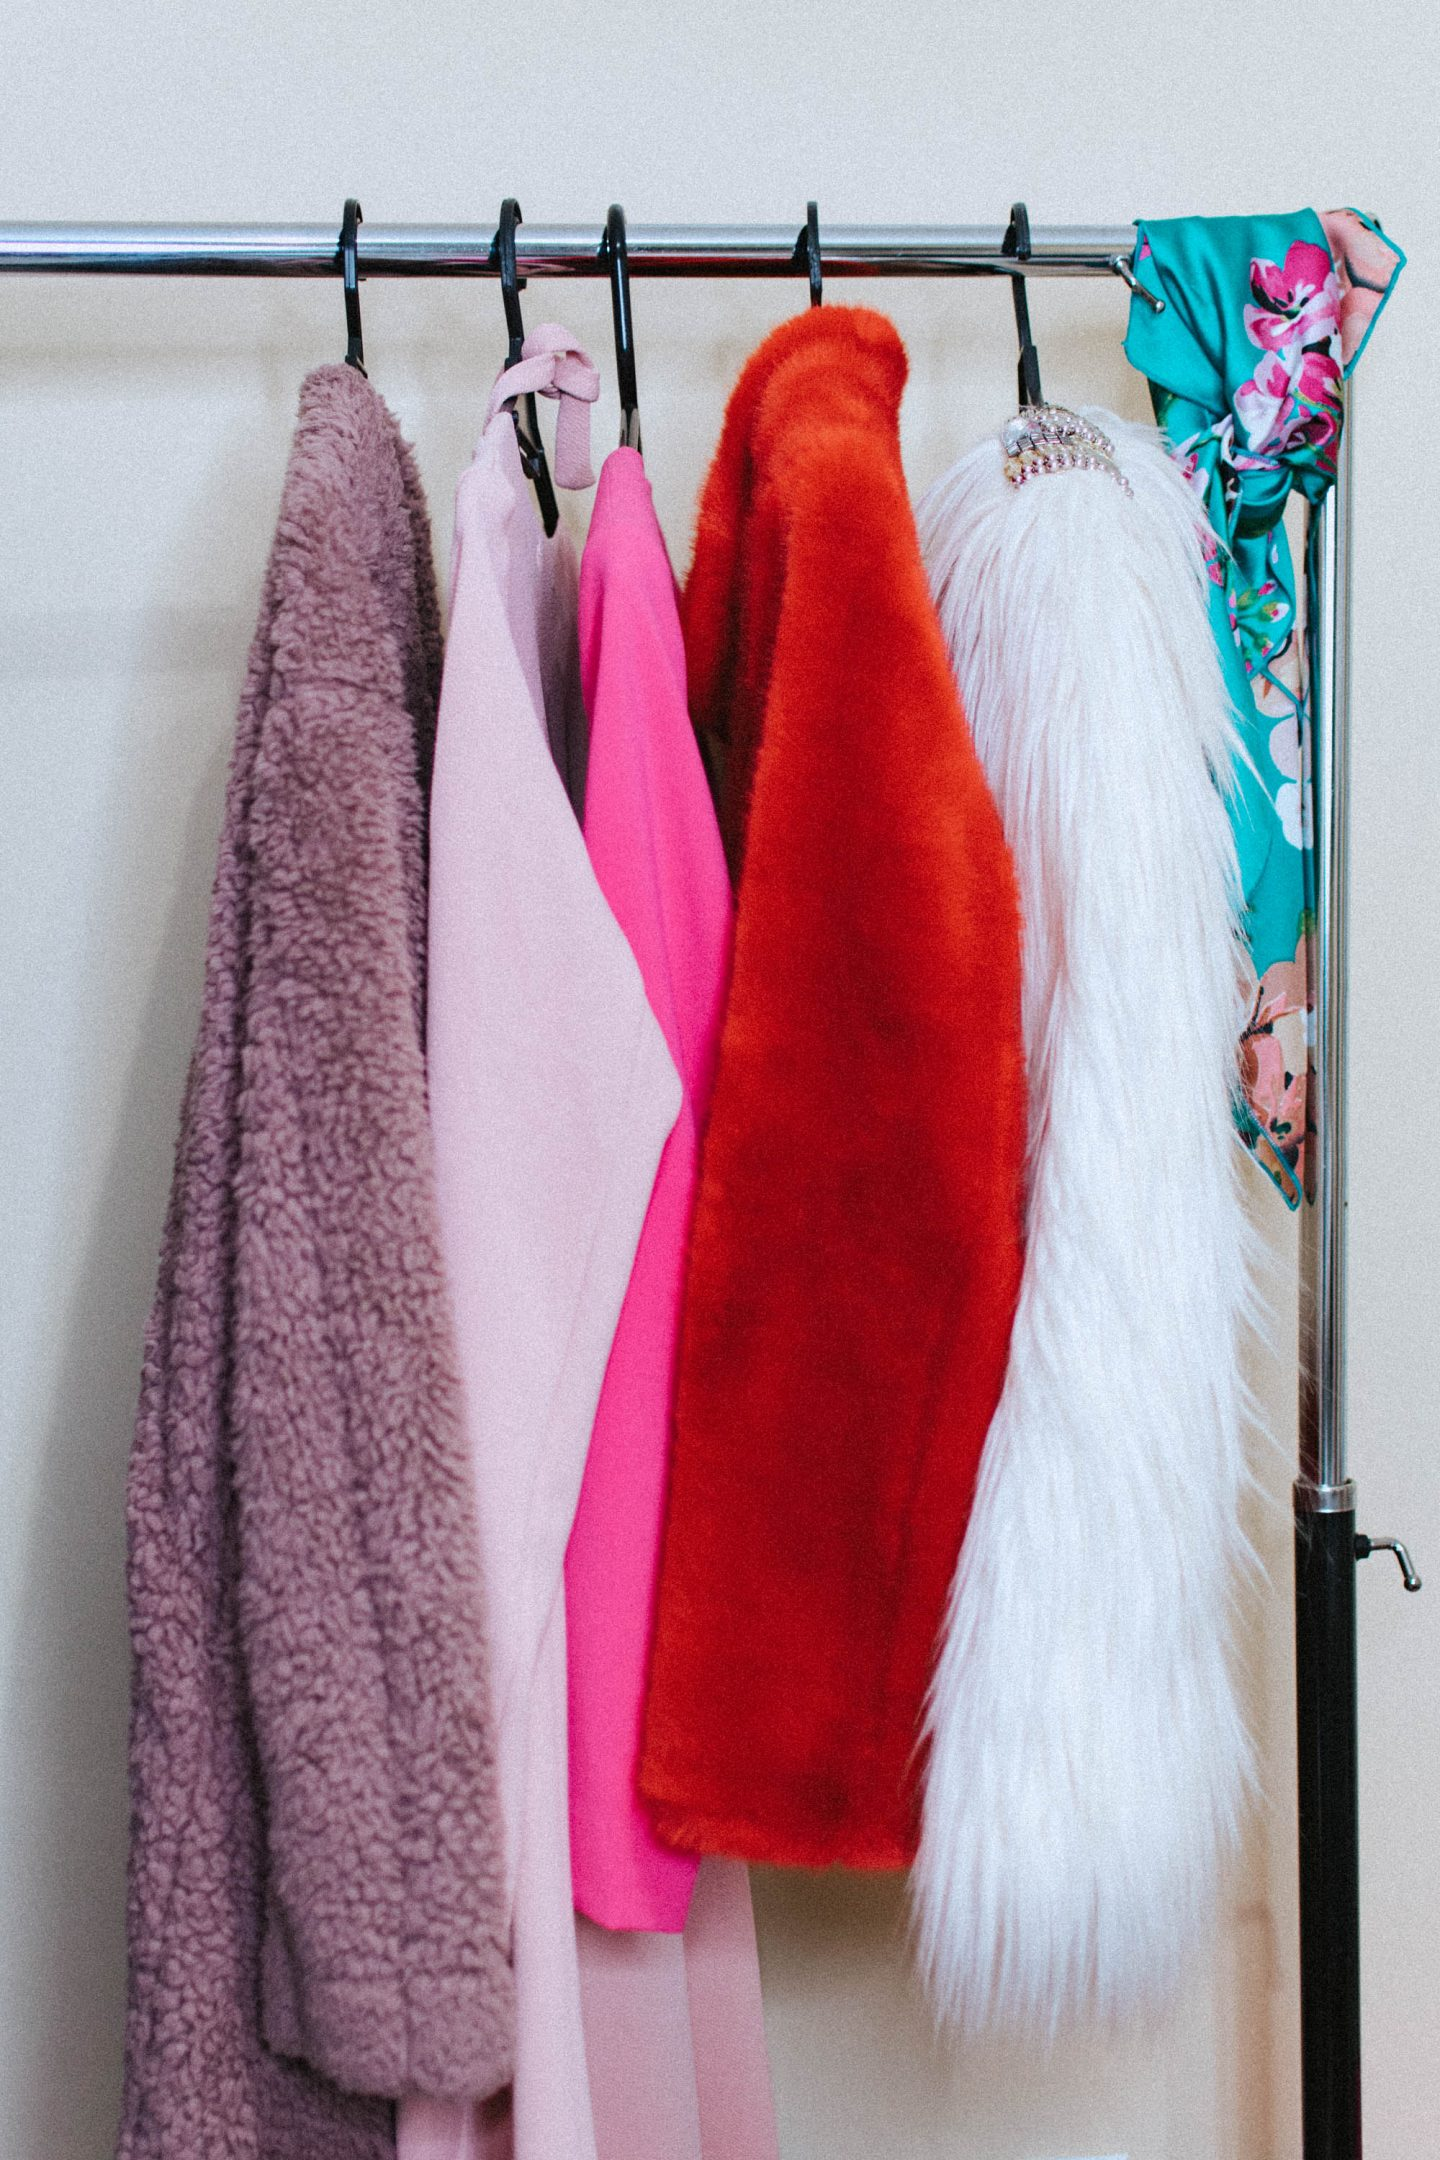 Doing a closet purge can help get rid of pieces you don't wear to make room for more